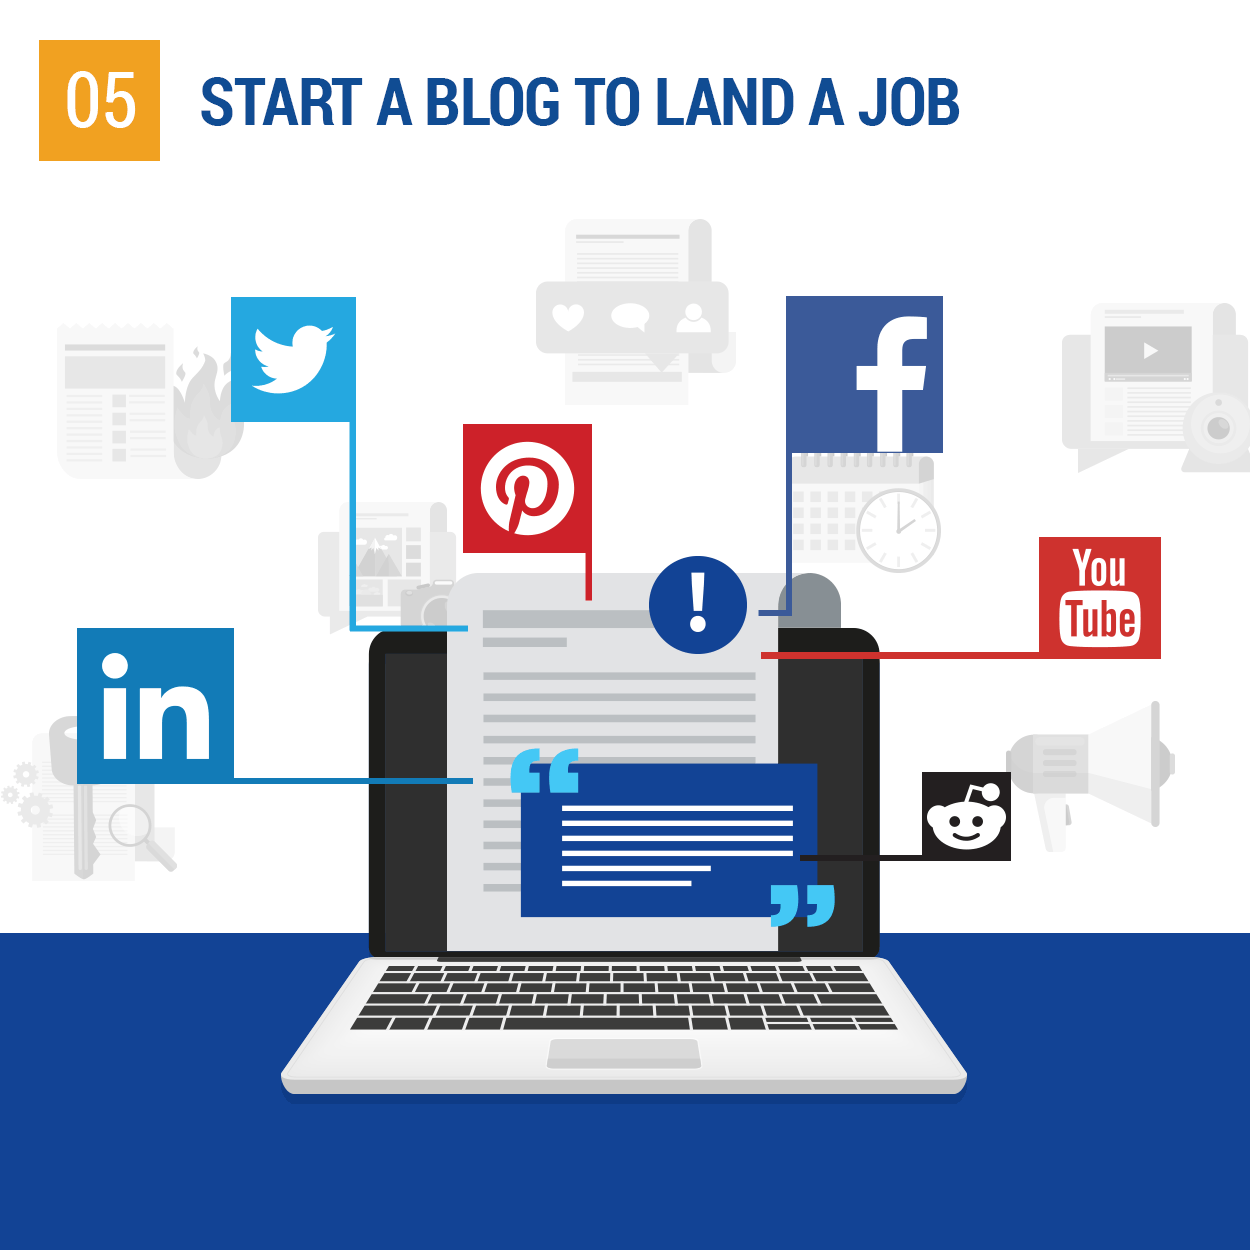 Start a blog to land a job